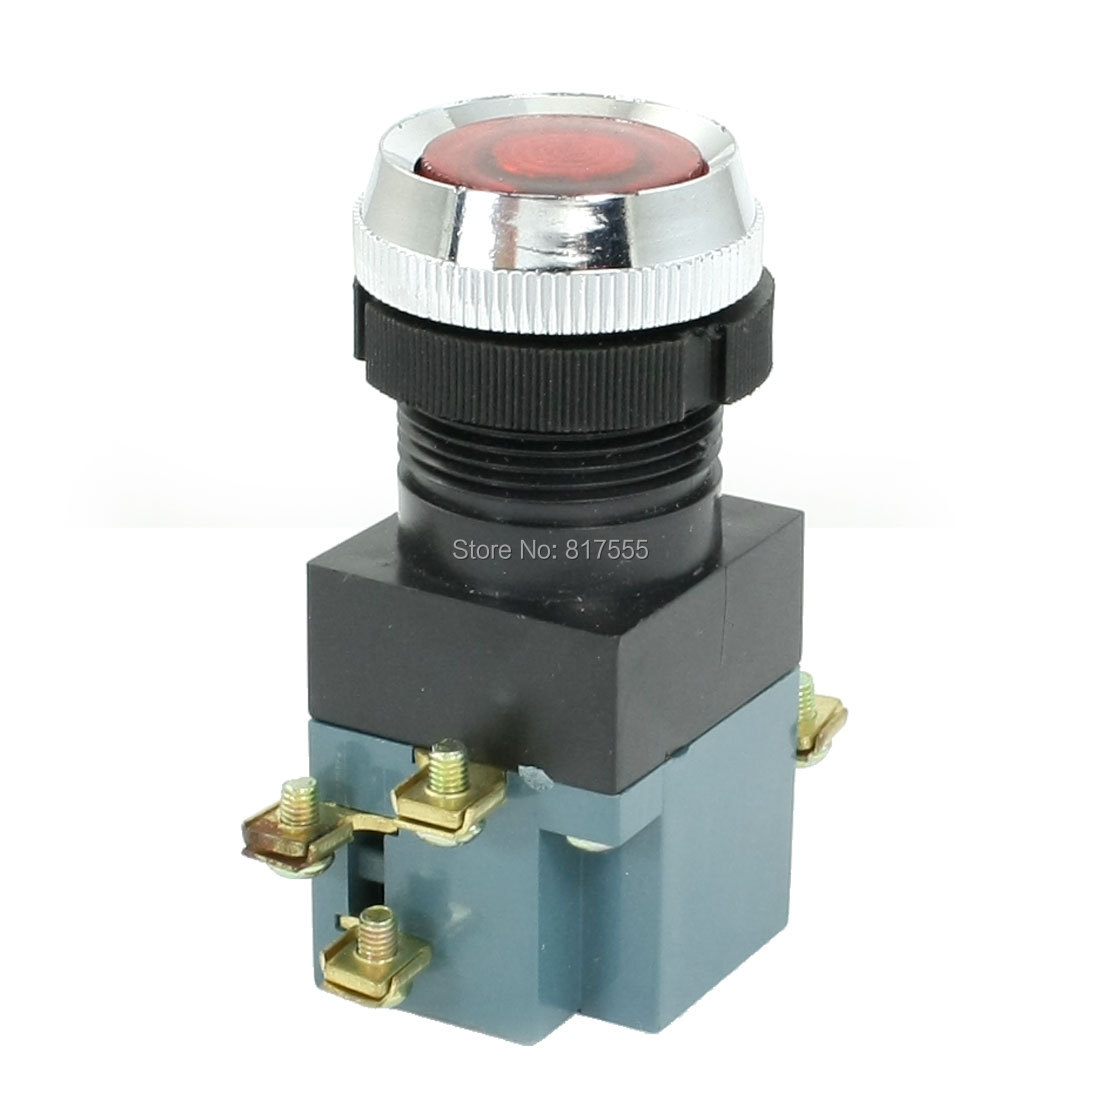 AC380V 5A Indicater Light ON OFF START STOP Momentary Push Button Switch Diameter(China (Mainland))